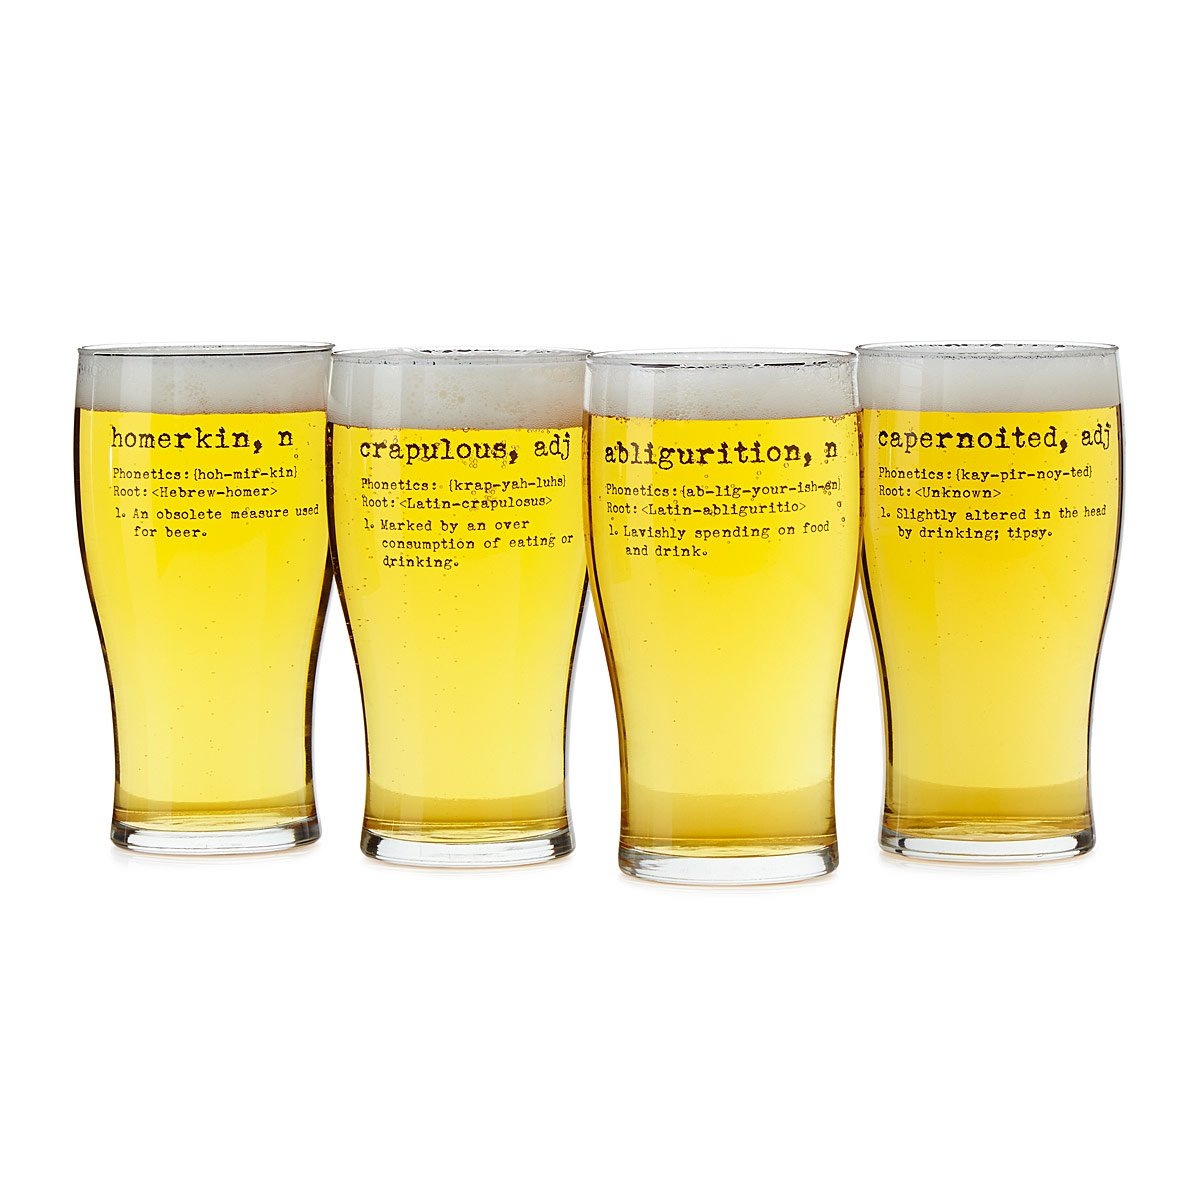 Life by Definition Beer Glasses - Set of 4